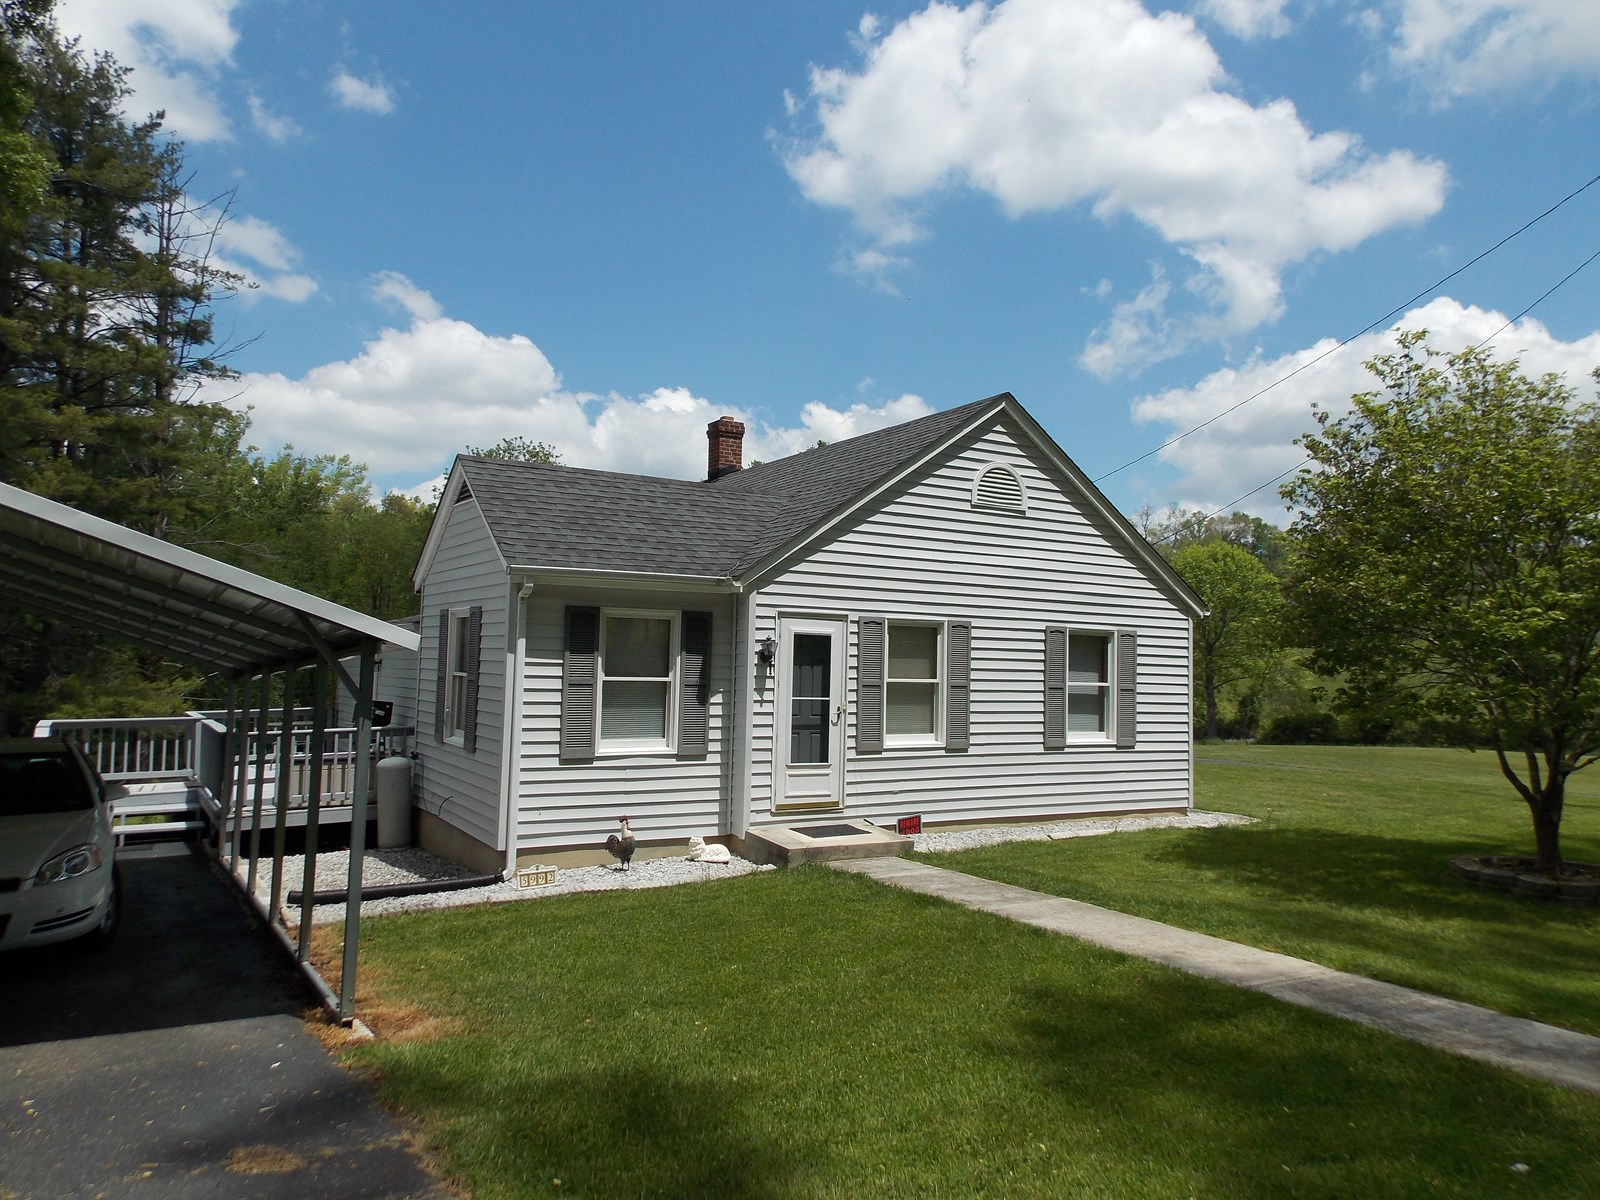 One Level Home for Sale in Floyd County VA